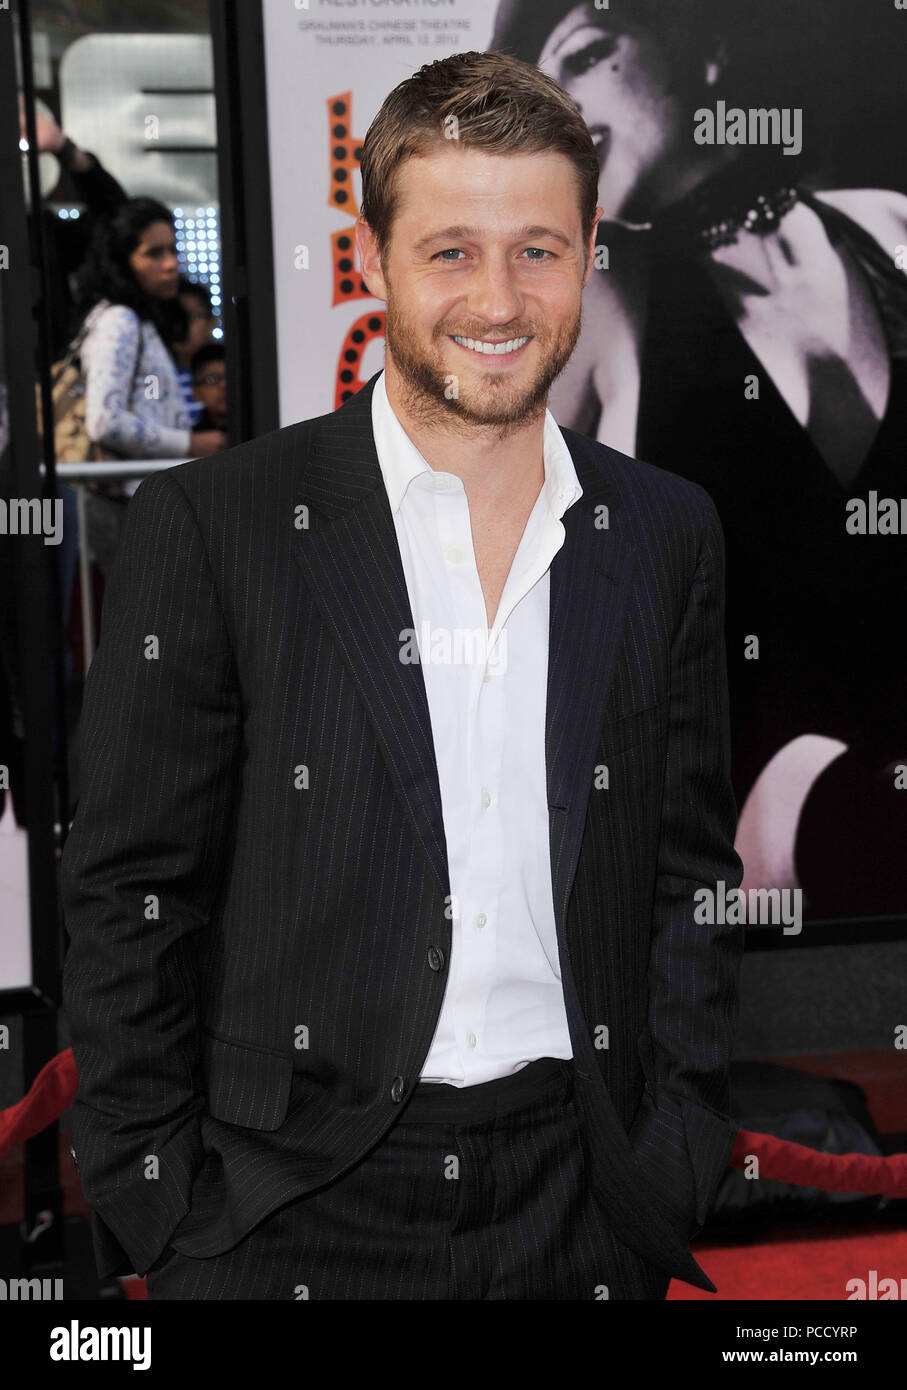 Benjamin McKenzie  at the 40th Anniversary Restoration of CABARET at the Opening Night of the TCM Classic Film Festival.Benjamin McKenzie _20 ------------- Red Carpet Event, Vertical, USA, Film Industry, Celebrities,  Photography, Bestof, Arts Culture and Entertainment, Topix Celebrities fashion /  Vertical, Best of, Event in Hollywood Life - California,  Red Carpet and backstage, USA, Film Industry, Celebrities,  movie celebrities, TV celebrities, Music celebrities, Photography, Bestof, Arts Culture and Entertainment,  Topix, Three Quarters, vertical, one person,, from the year , 2012, inquir - Stock Image